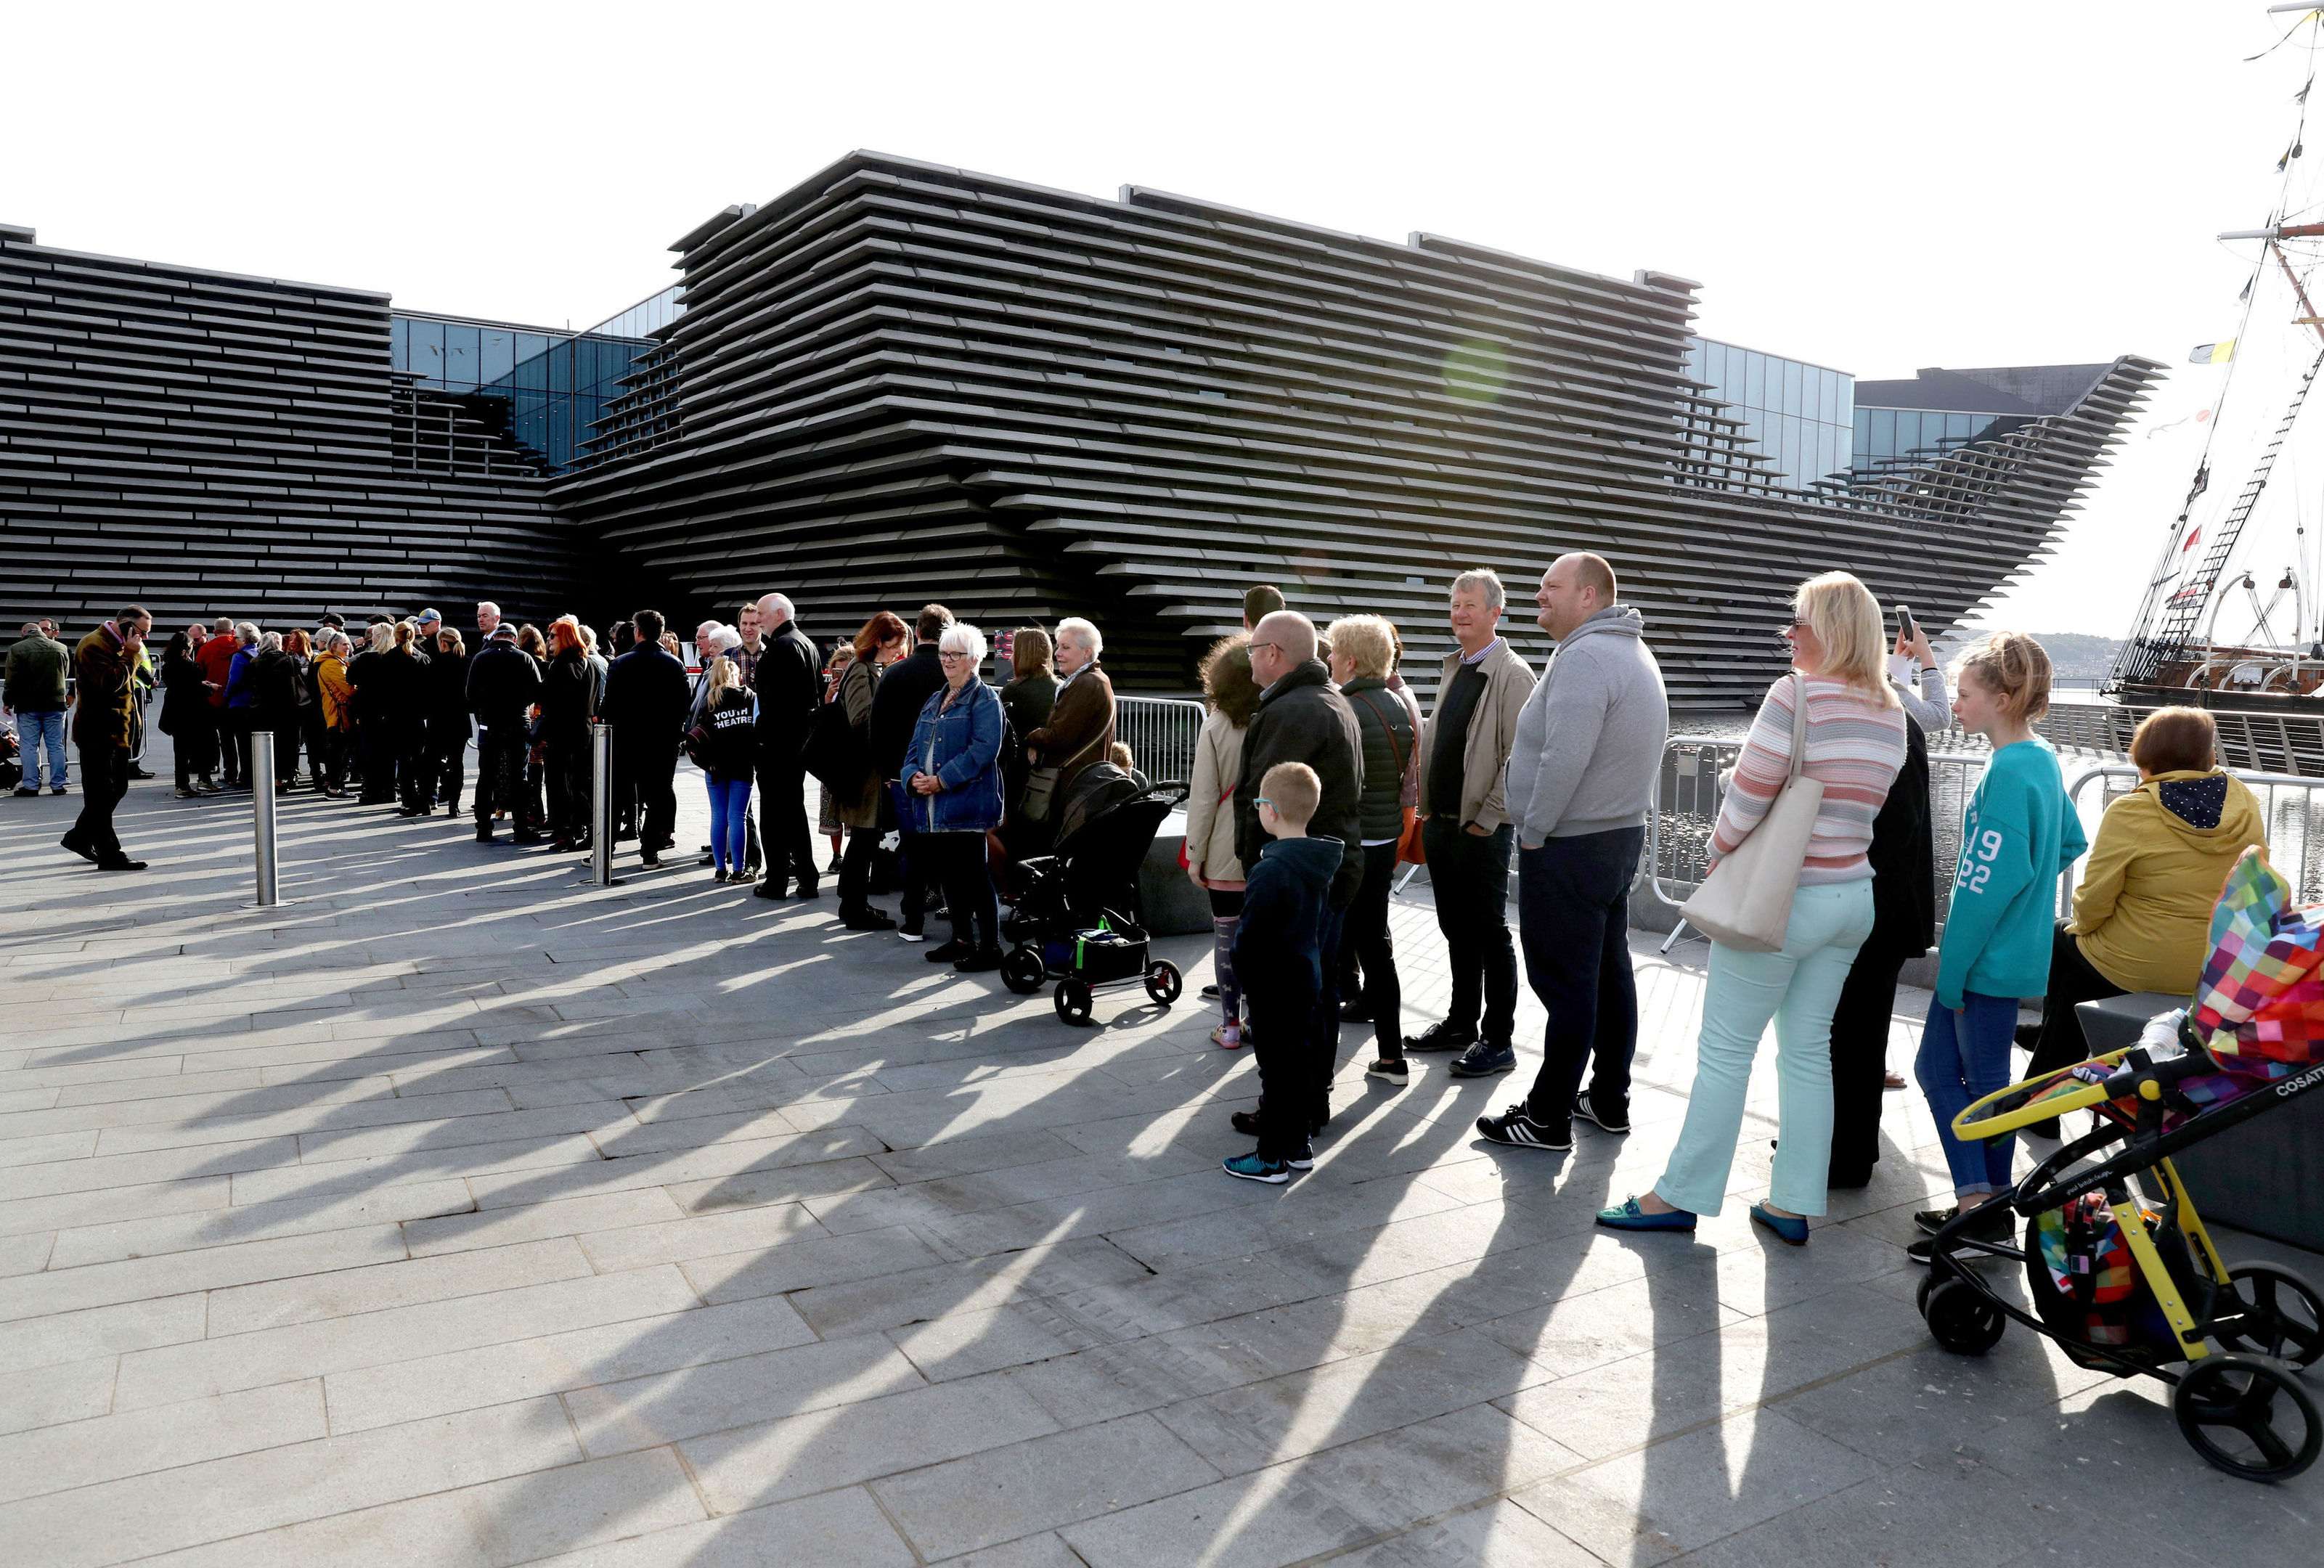 People queue for a first look inside V&A (Andrew Milligan / PA)